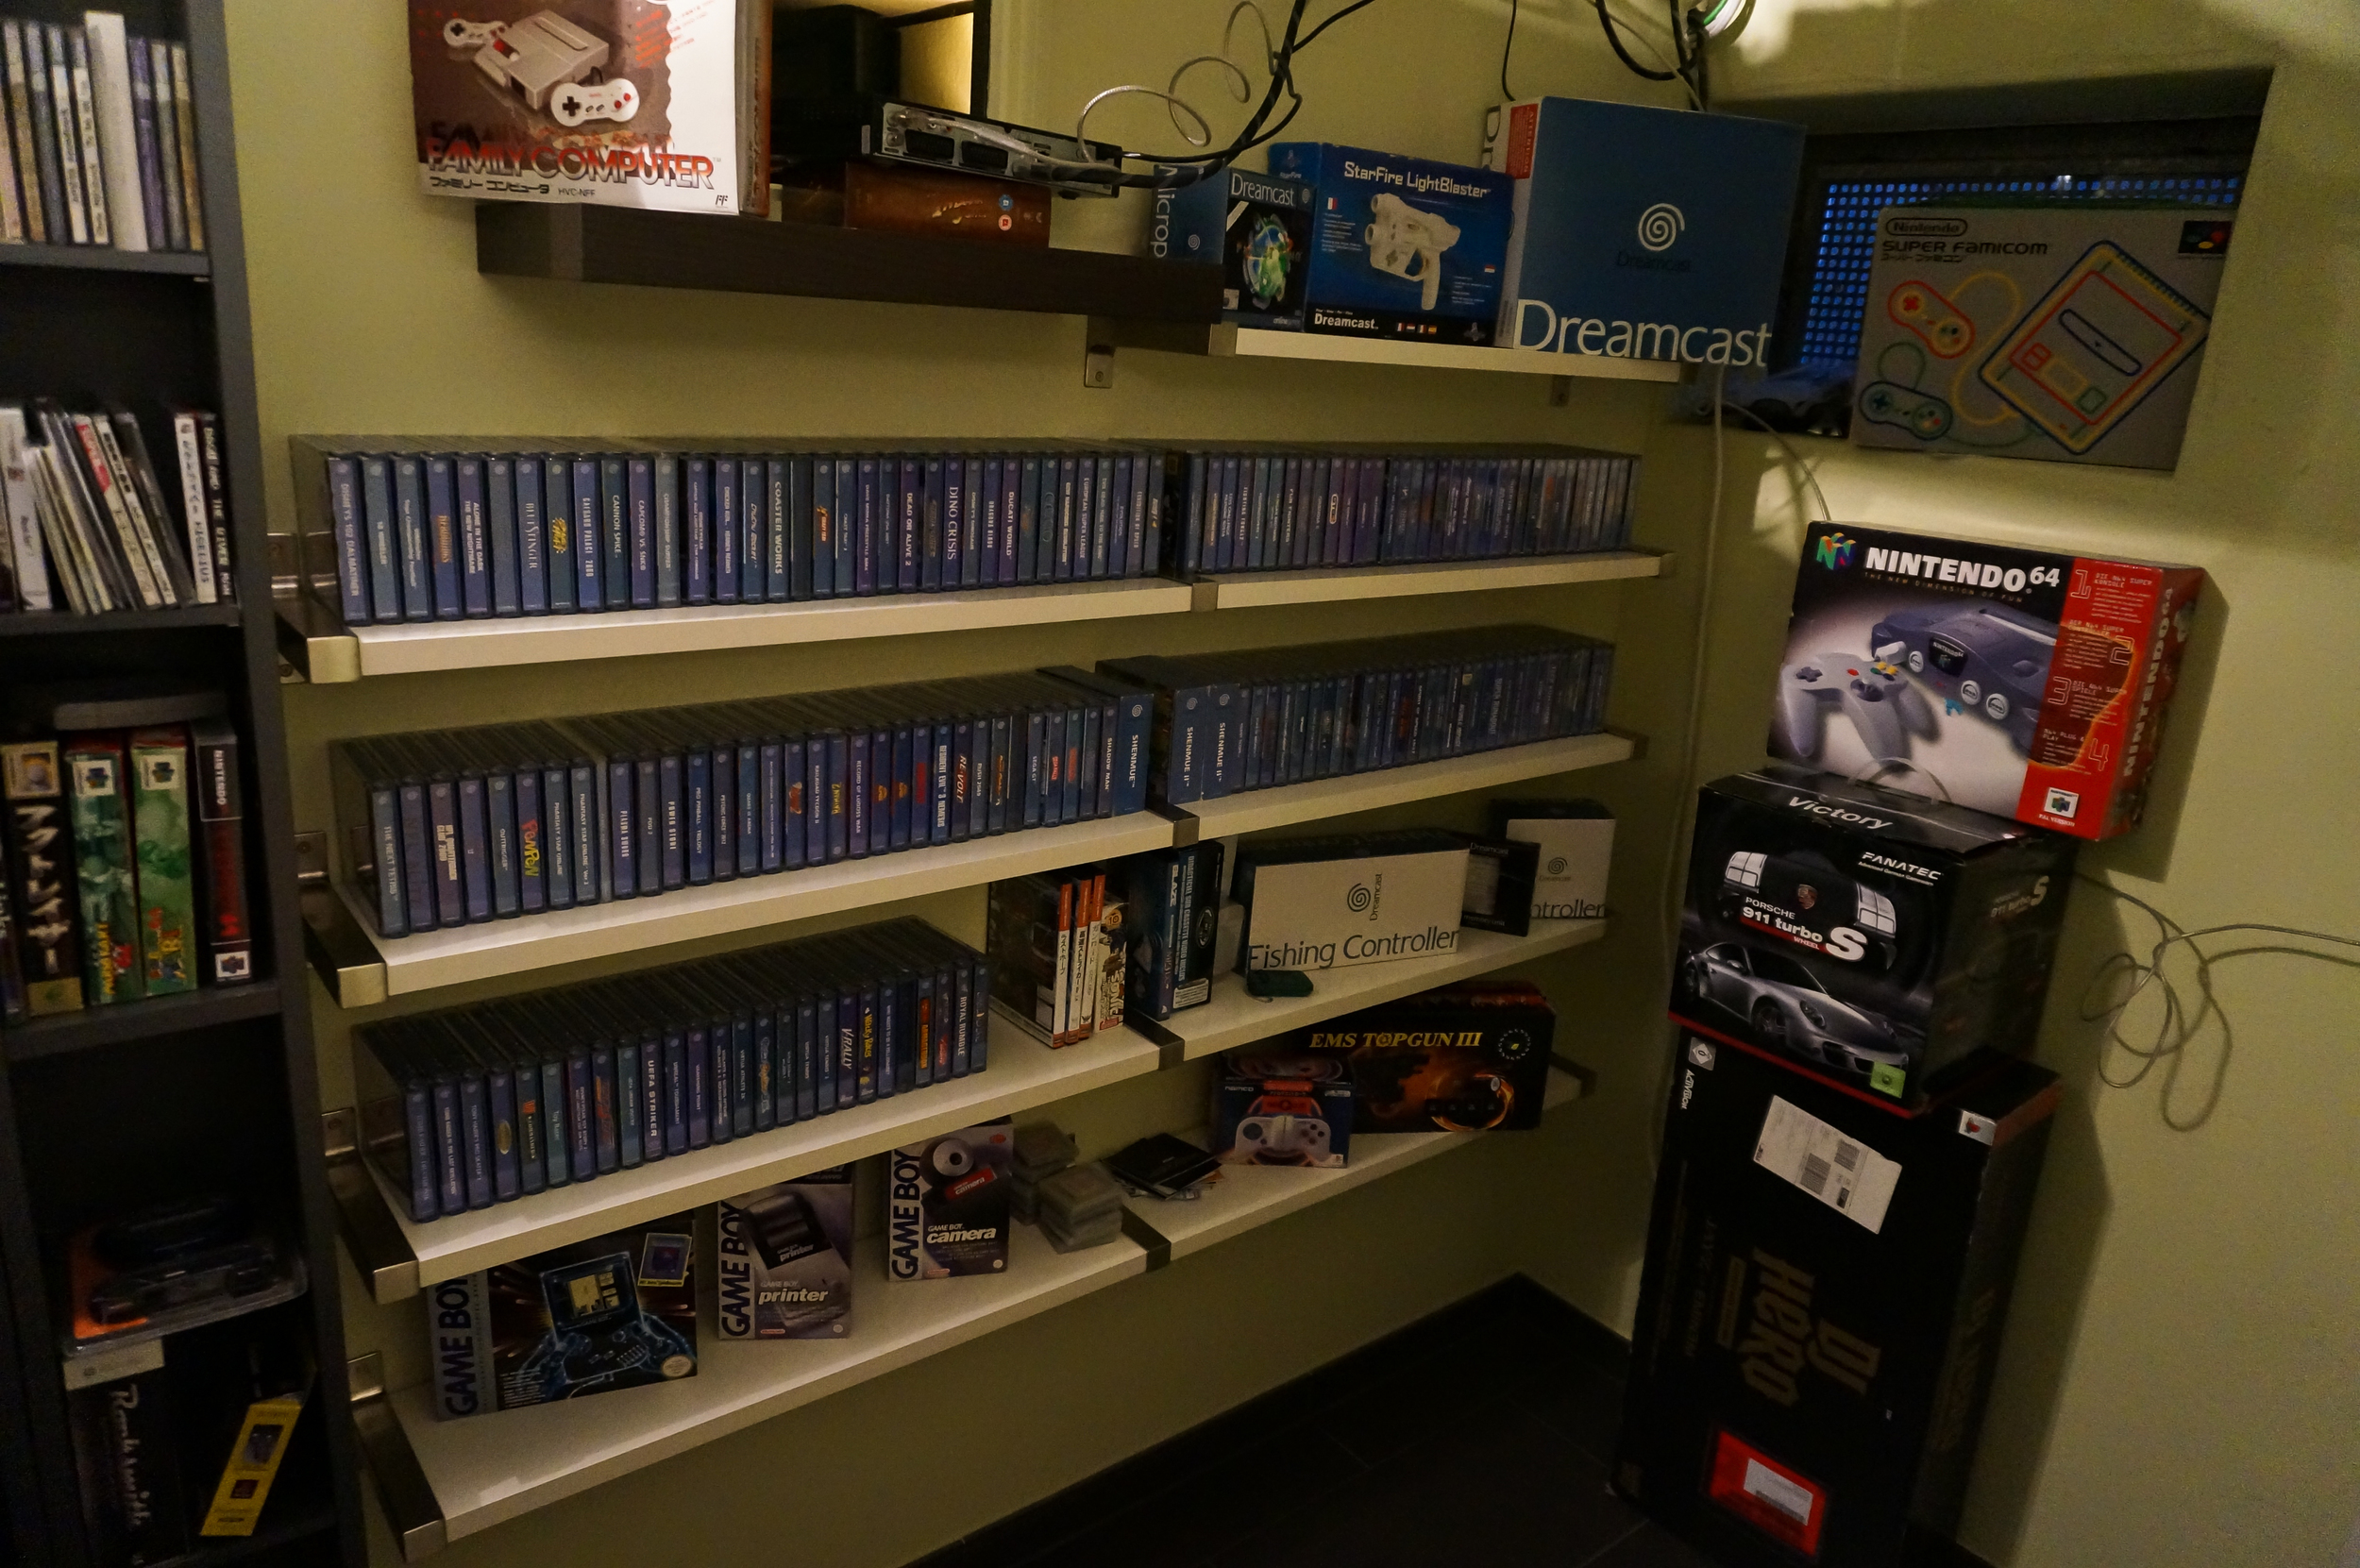 Dreamcast Games and Hardware